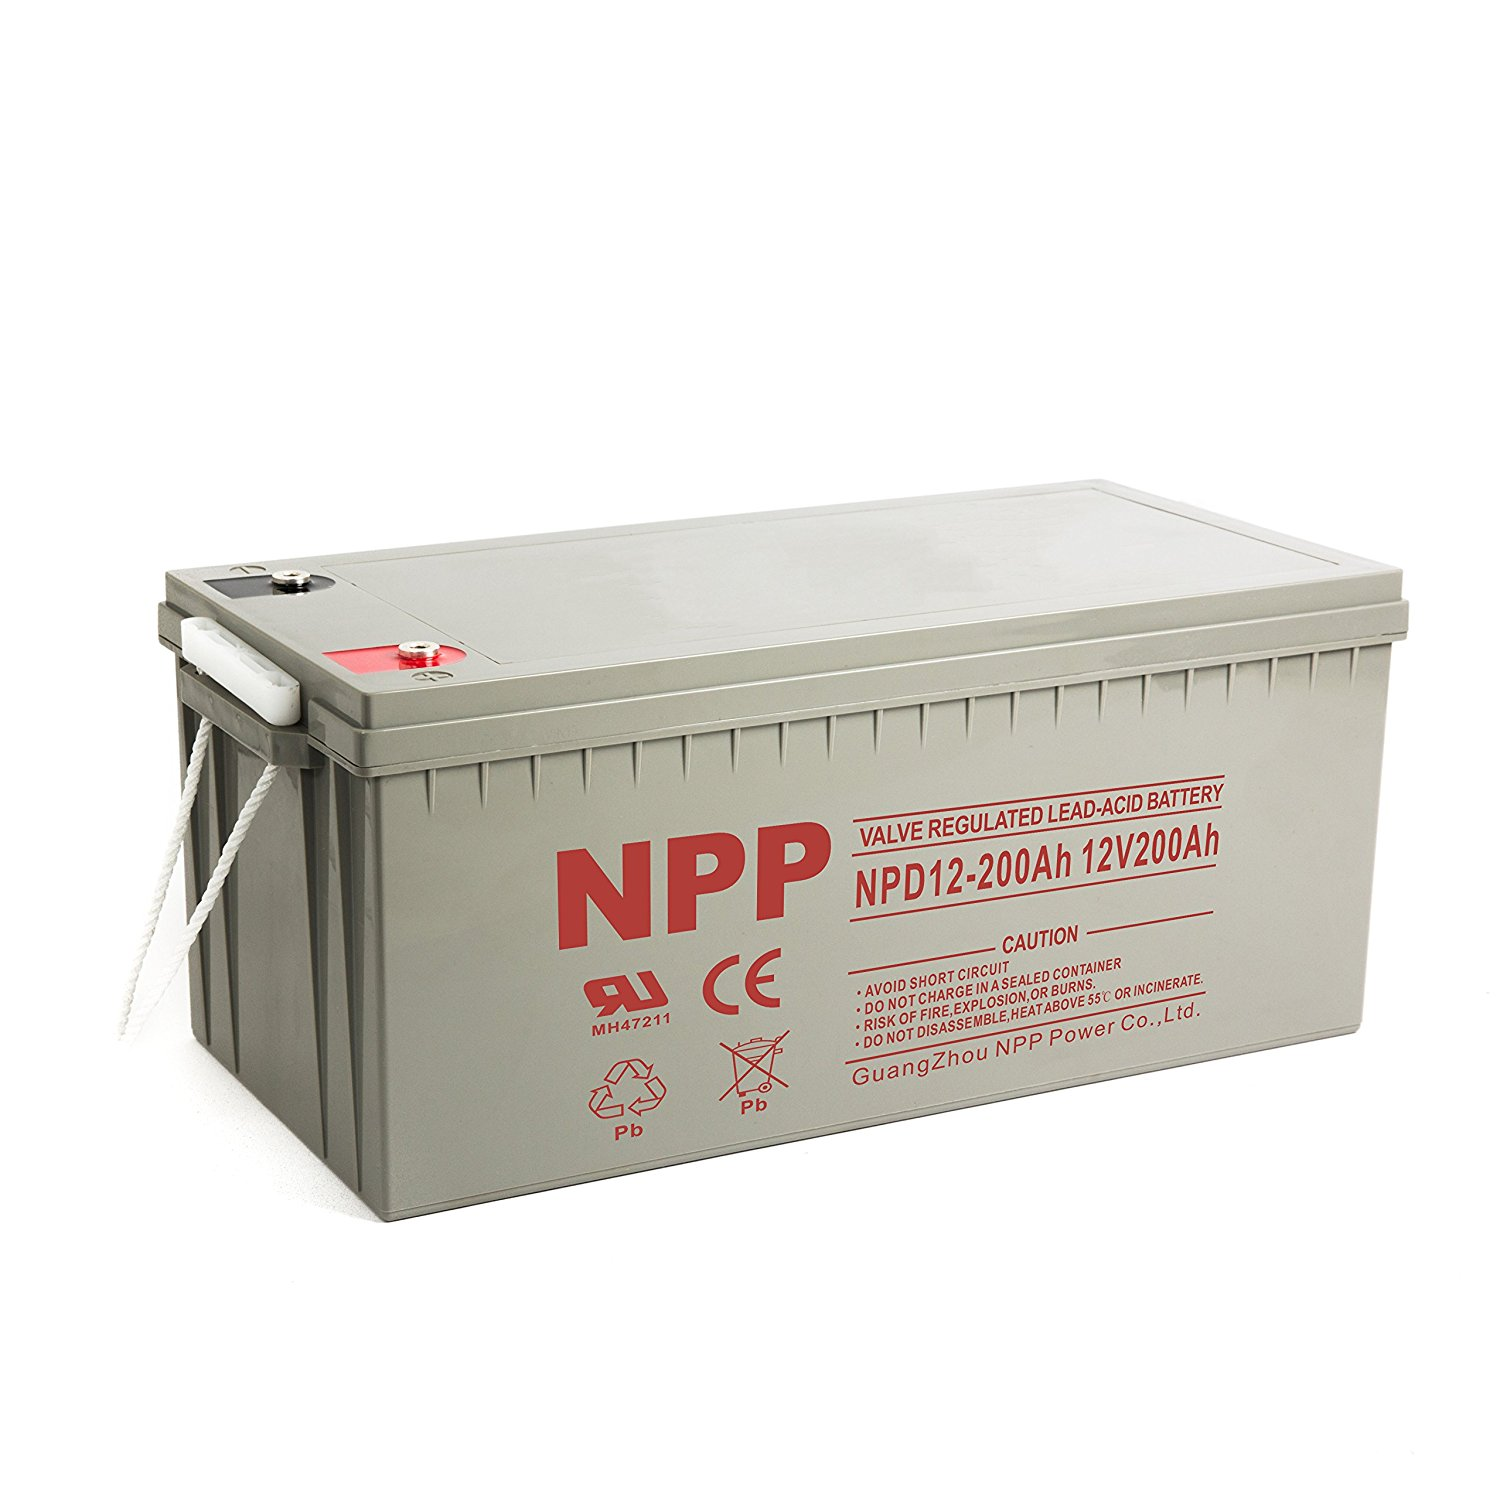 NPP-Battery-Rechargeable-Sealed-Lead-Acid-GEL-Deep-Cycle-Battery-NP-Power